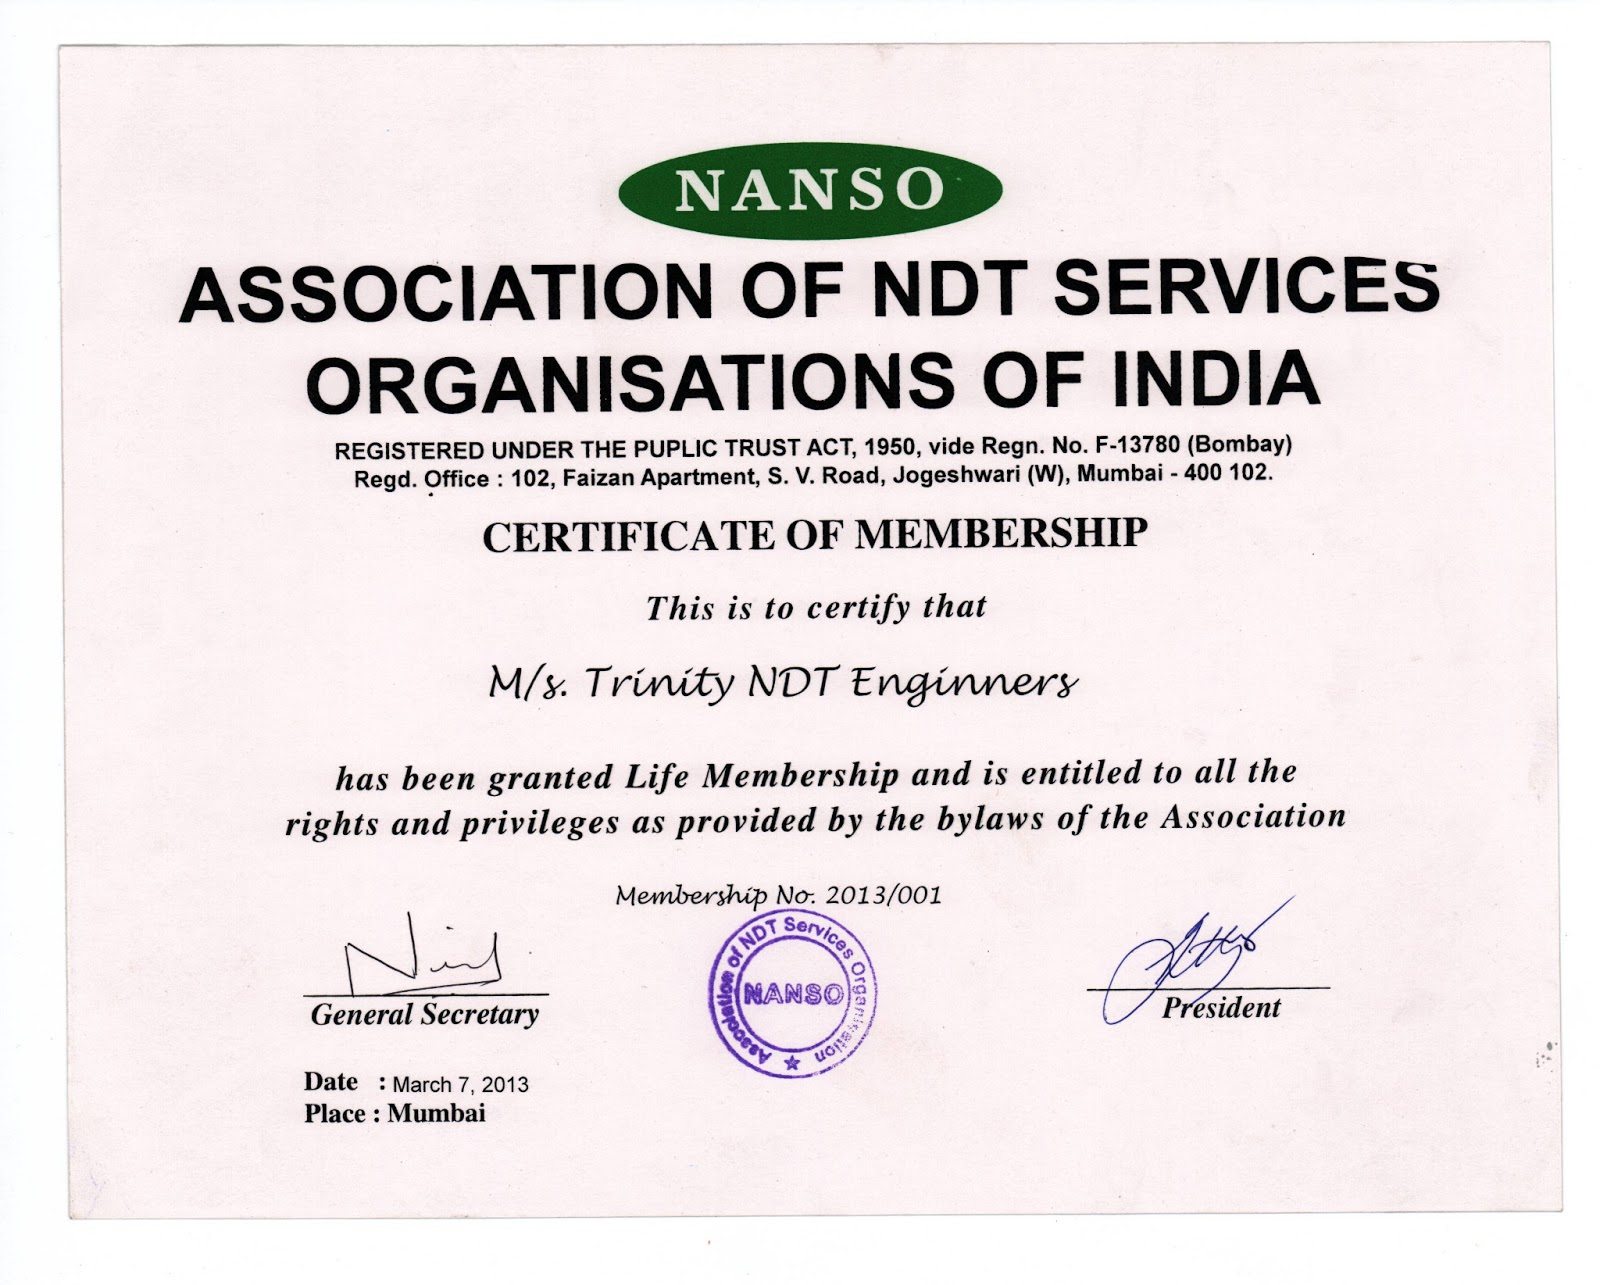 Ndt Training Trinity Ndt Is Now A Life Member Of Association Of Ndt